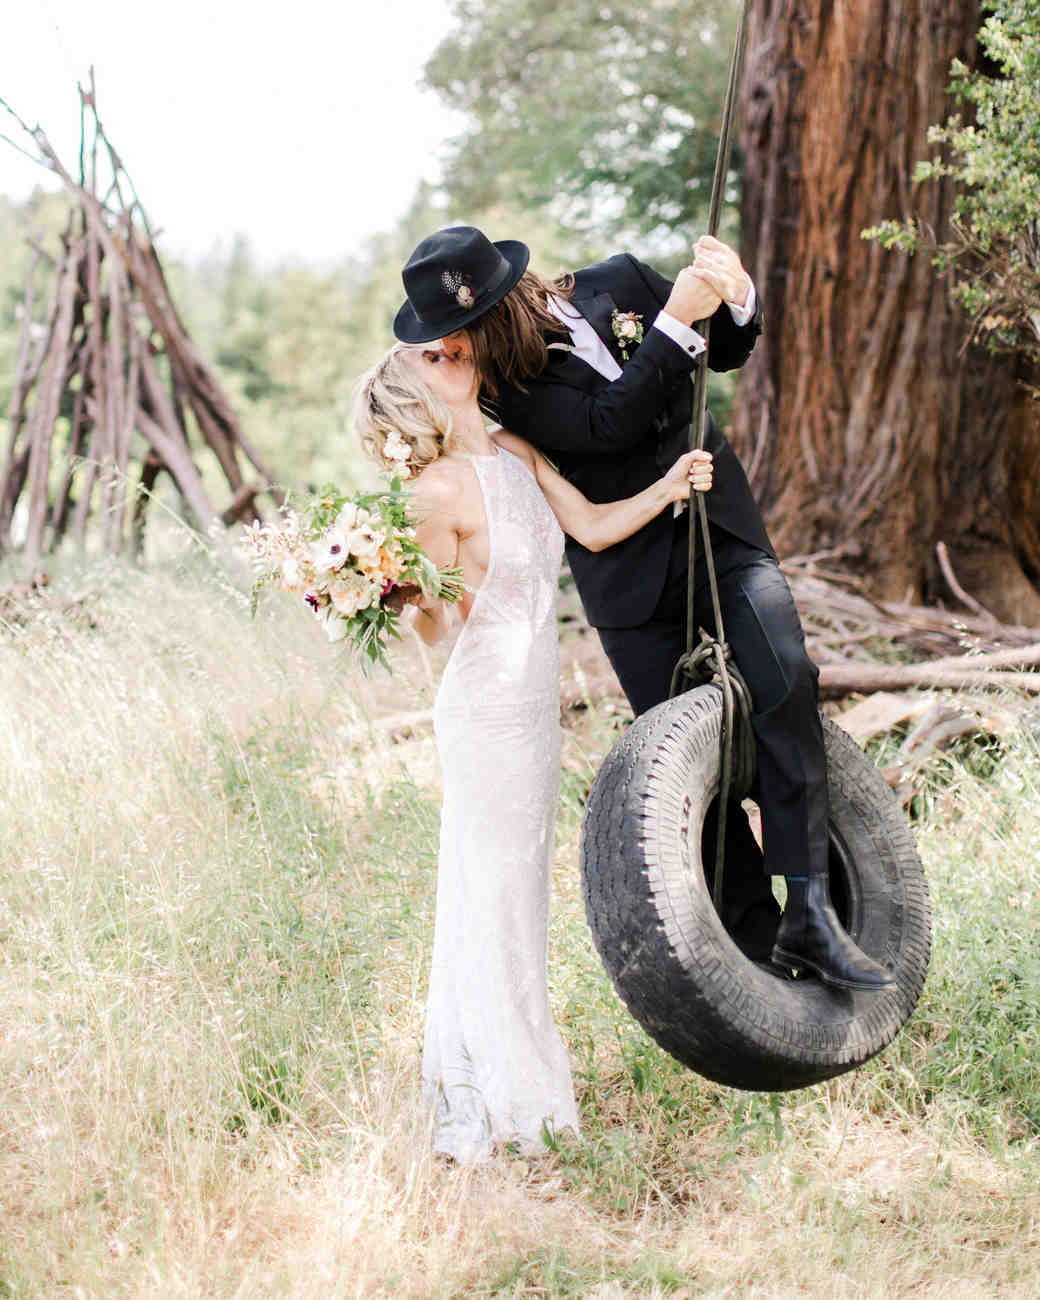 amanda chase wedding couple kissing on tire swing